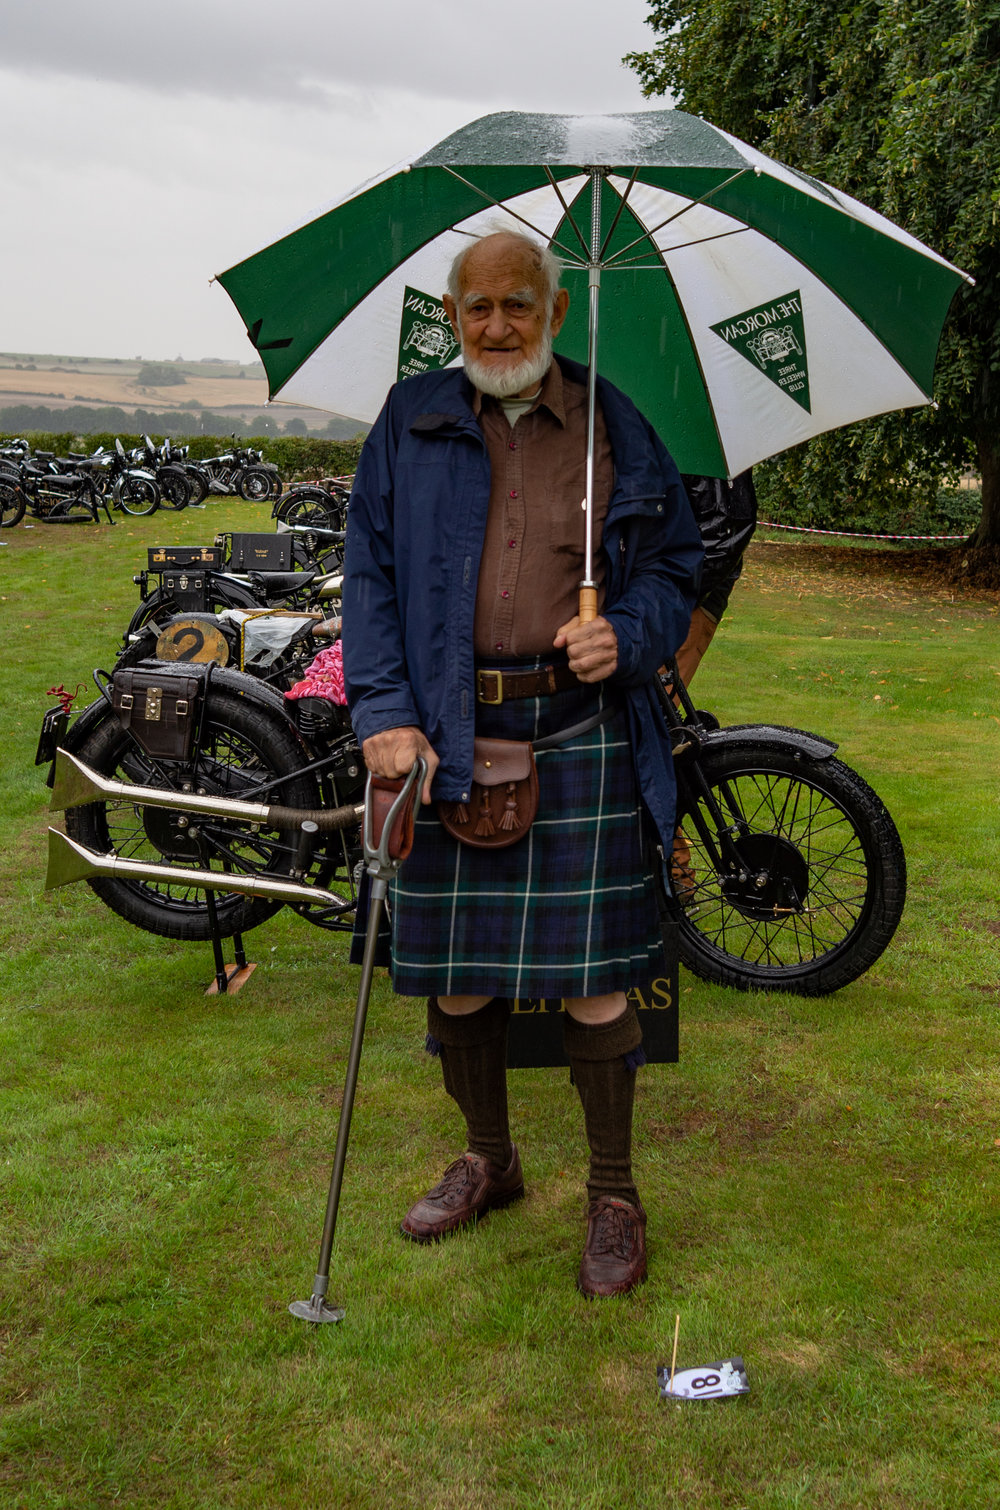 The kilt isn't the ideal gear for a rumbustious SS100, especially on such an ingloriously wet day. This impressive gentleman is the Reverend Michael Staines, one of the earliest members of the club in 1958